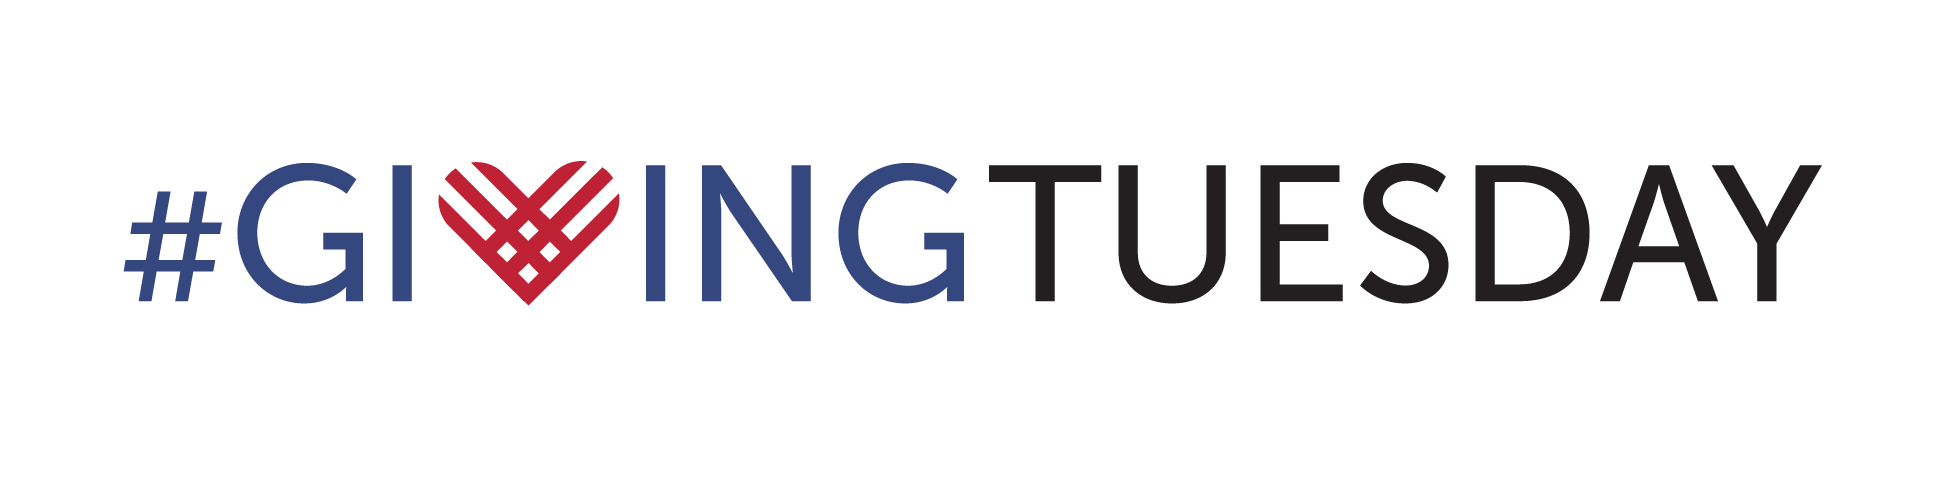 Giving_Tuesday_logo-no-date.jpg